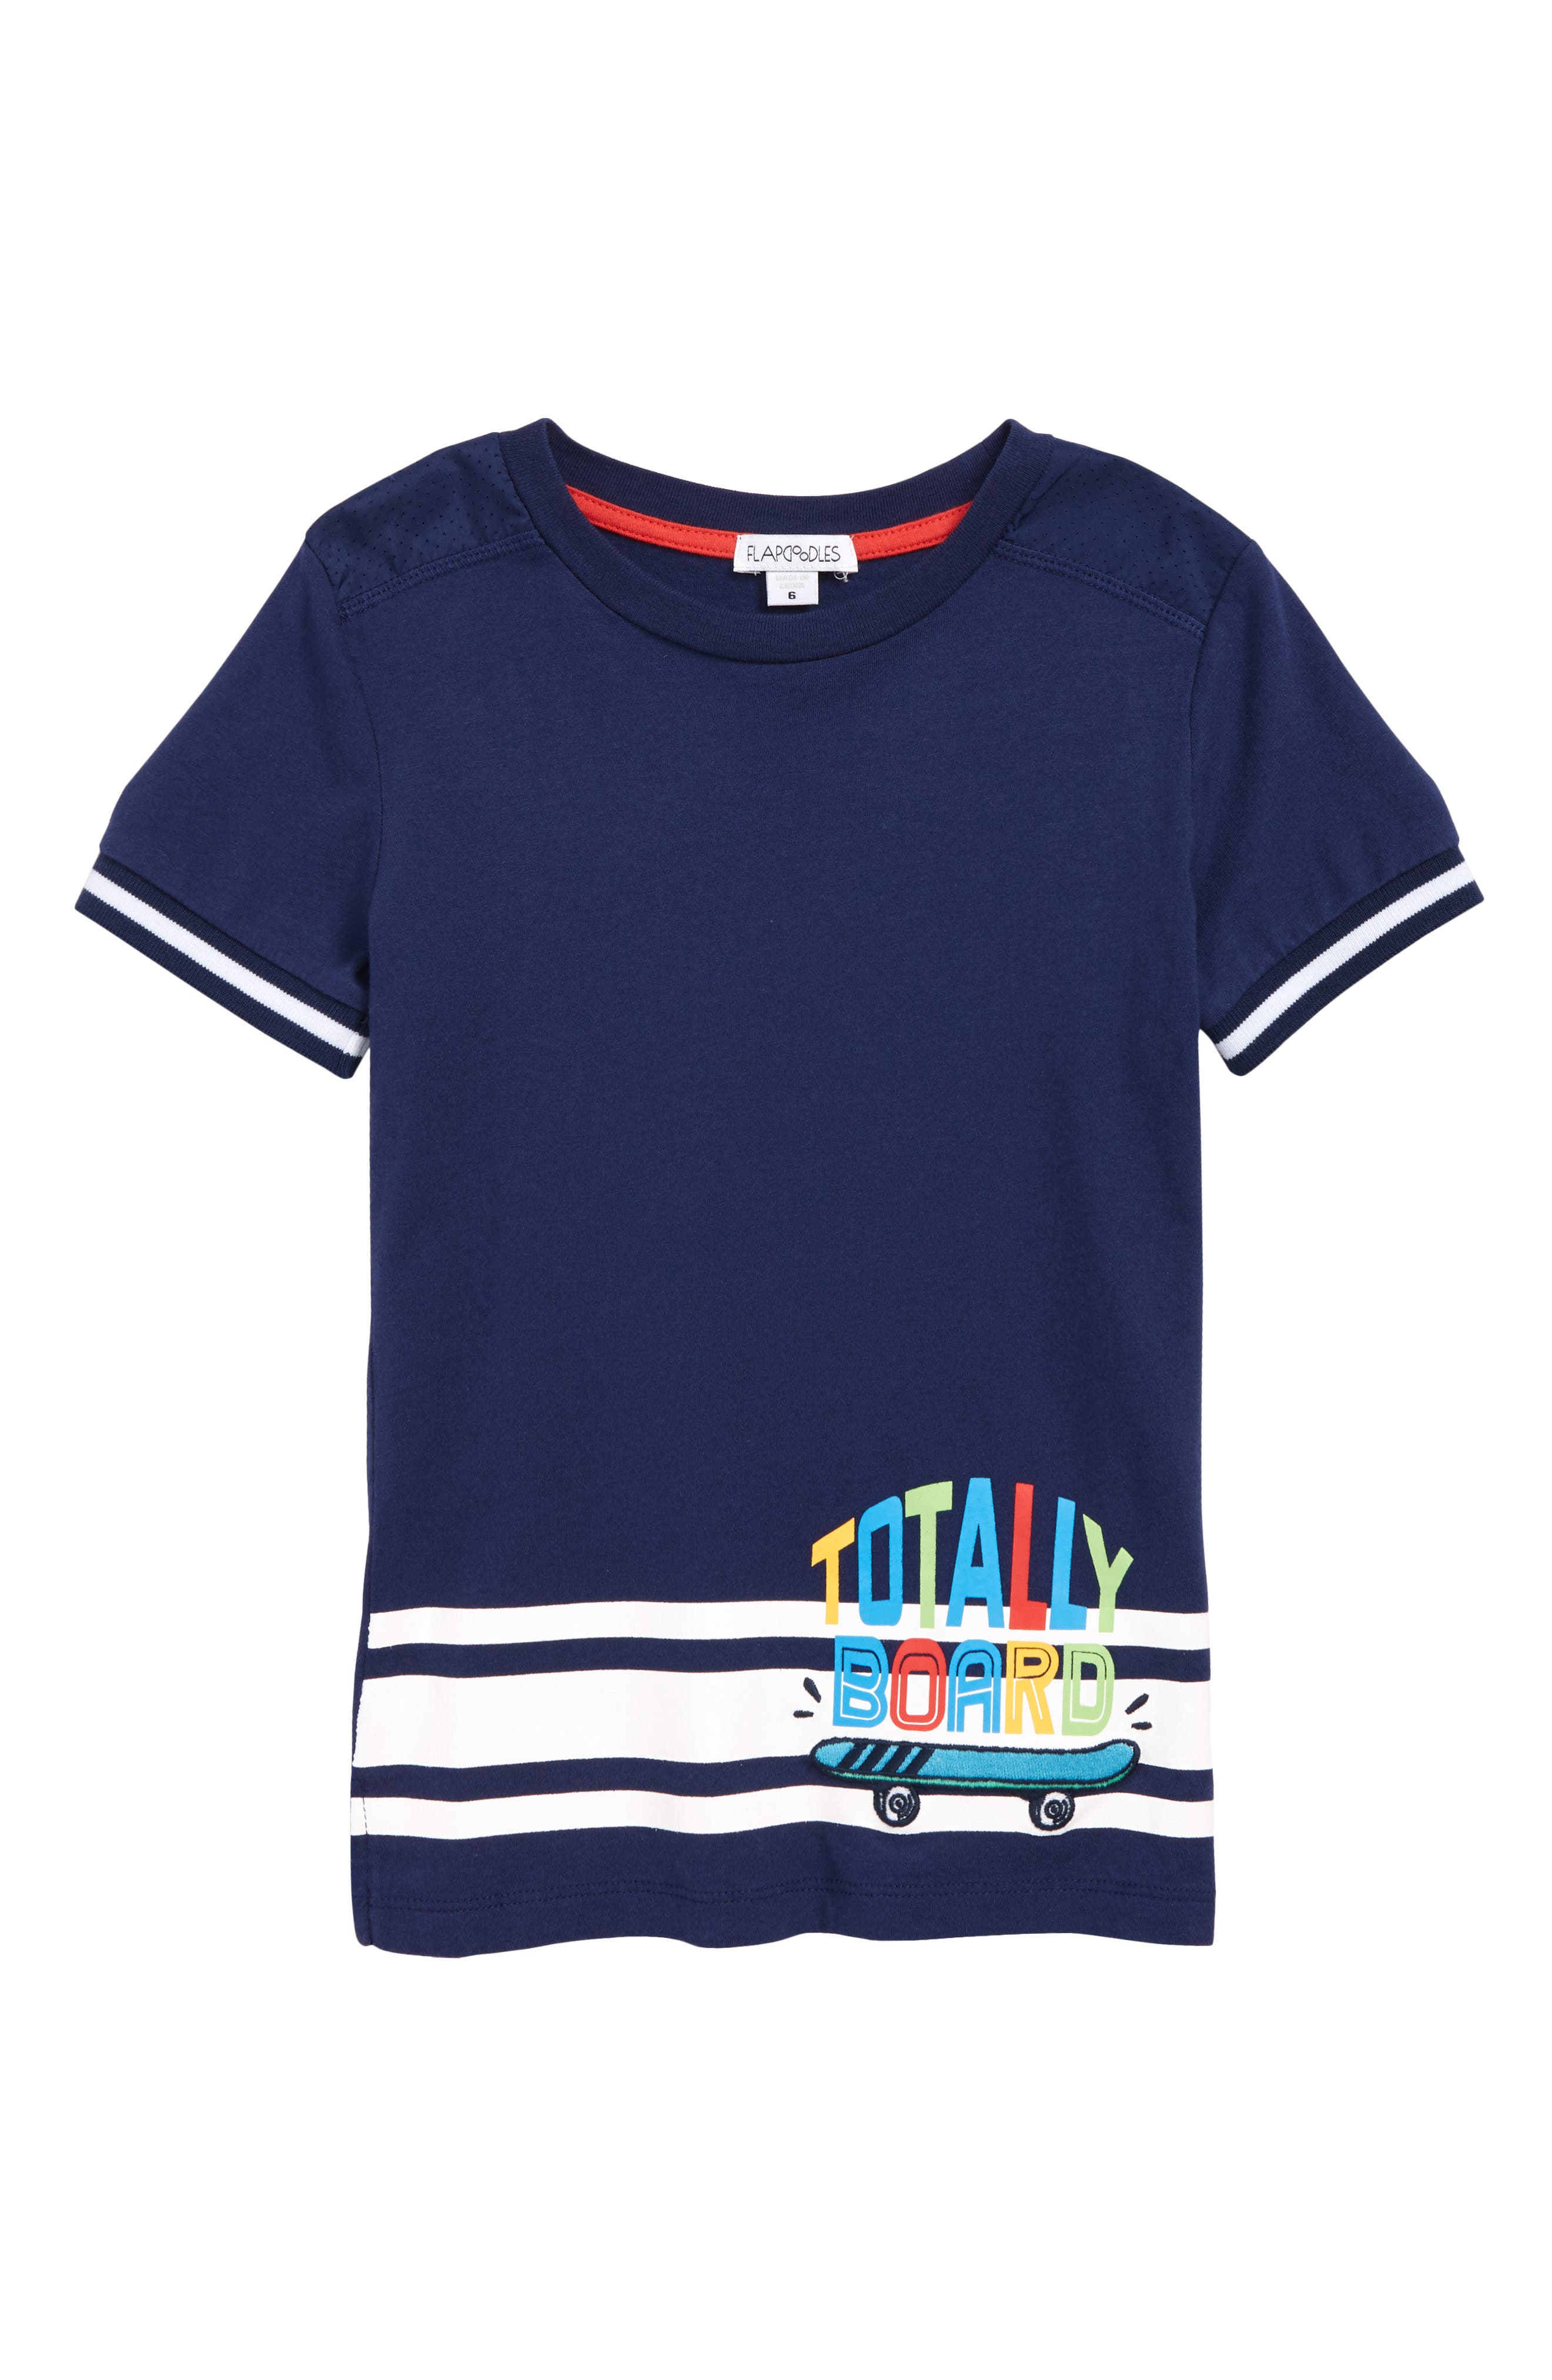 Totally Board T-Shirt, Main, color, MEDIEVAL BLUE